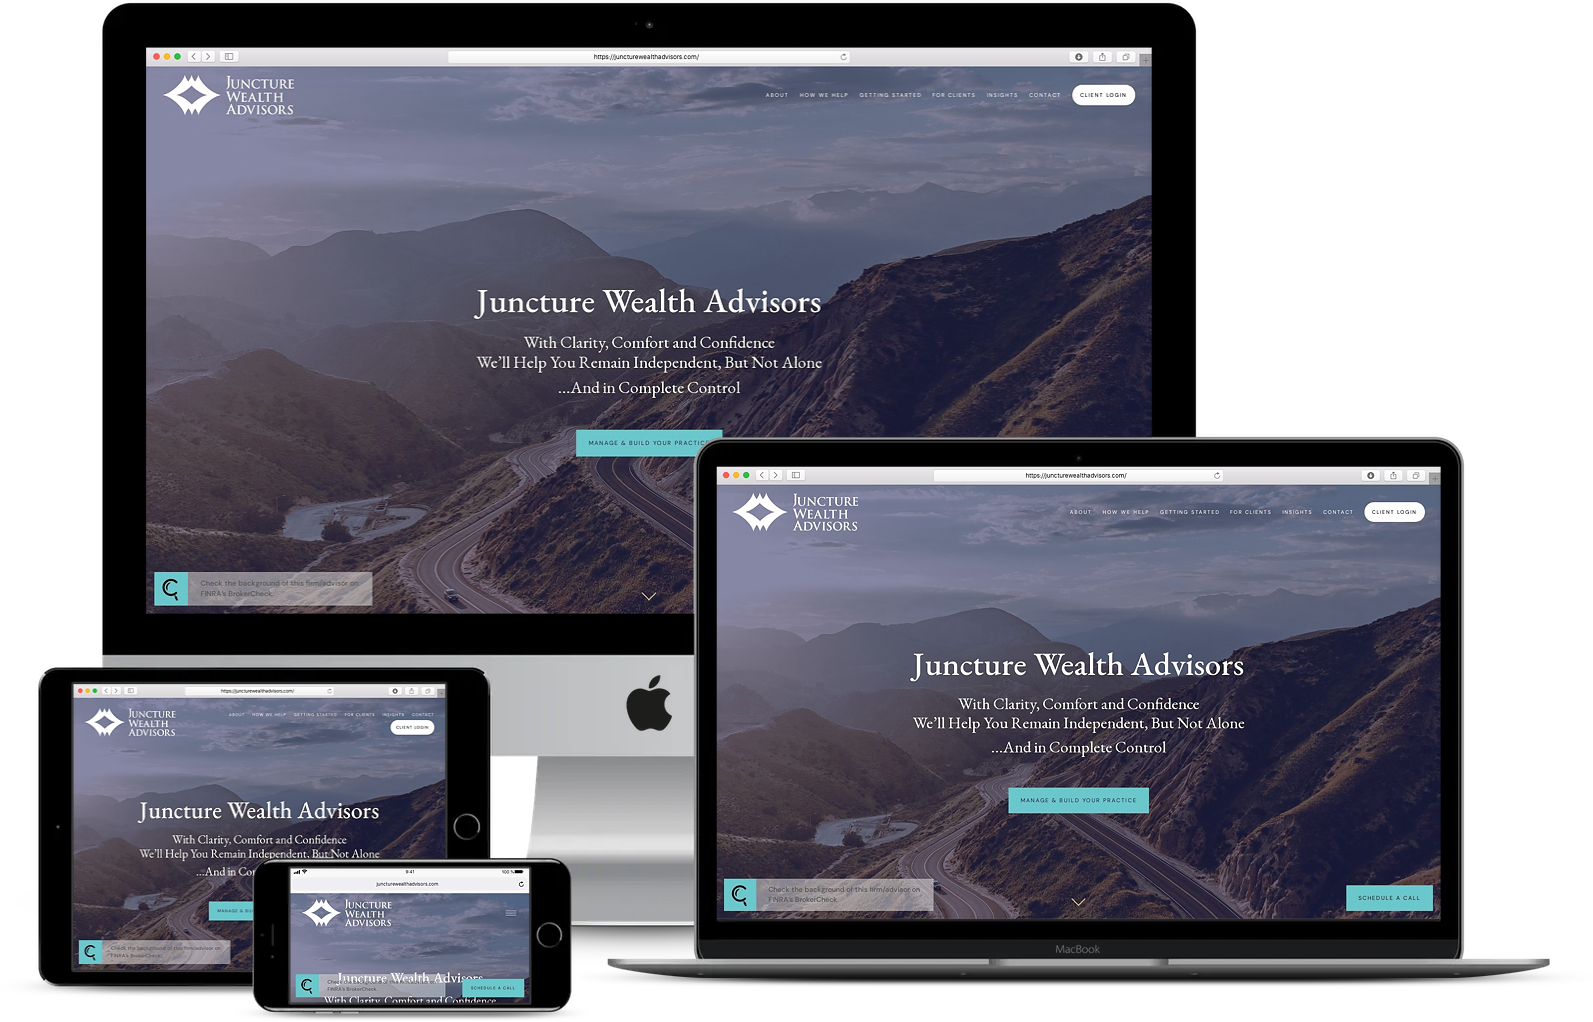 Juncture Wealth Advisors